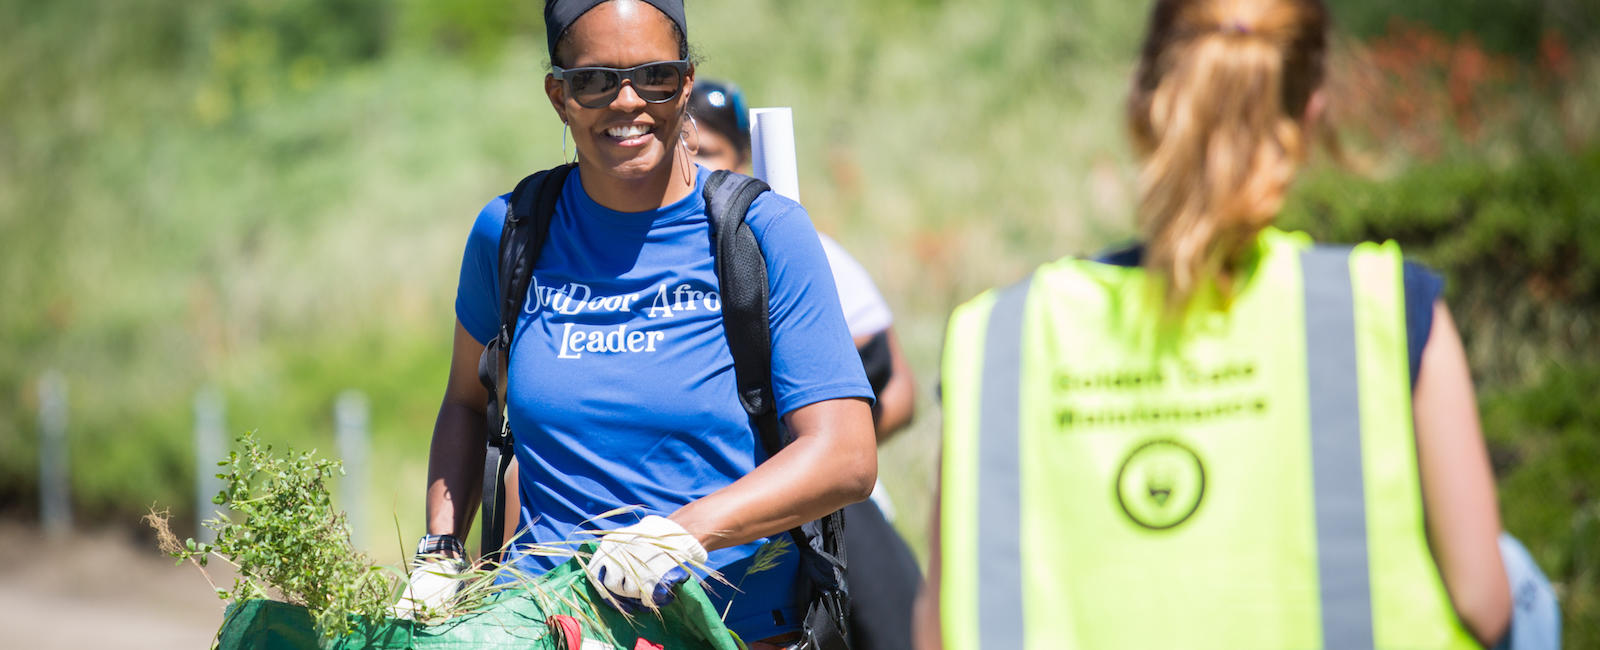 Volunteer at Lands End on Martin Luther King Jr. Day 2016